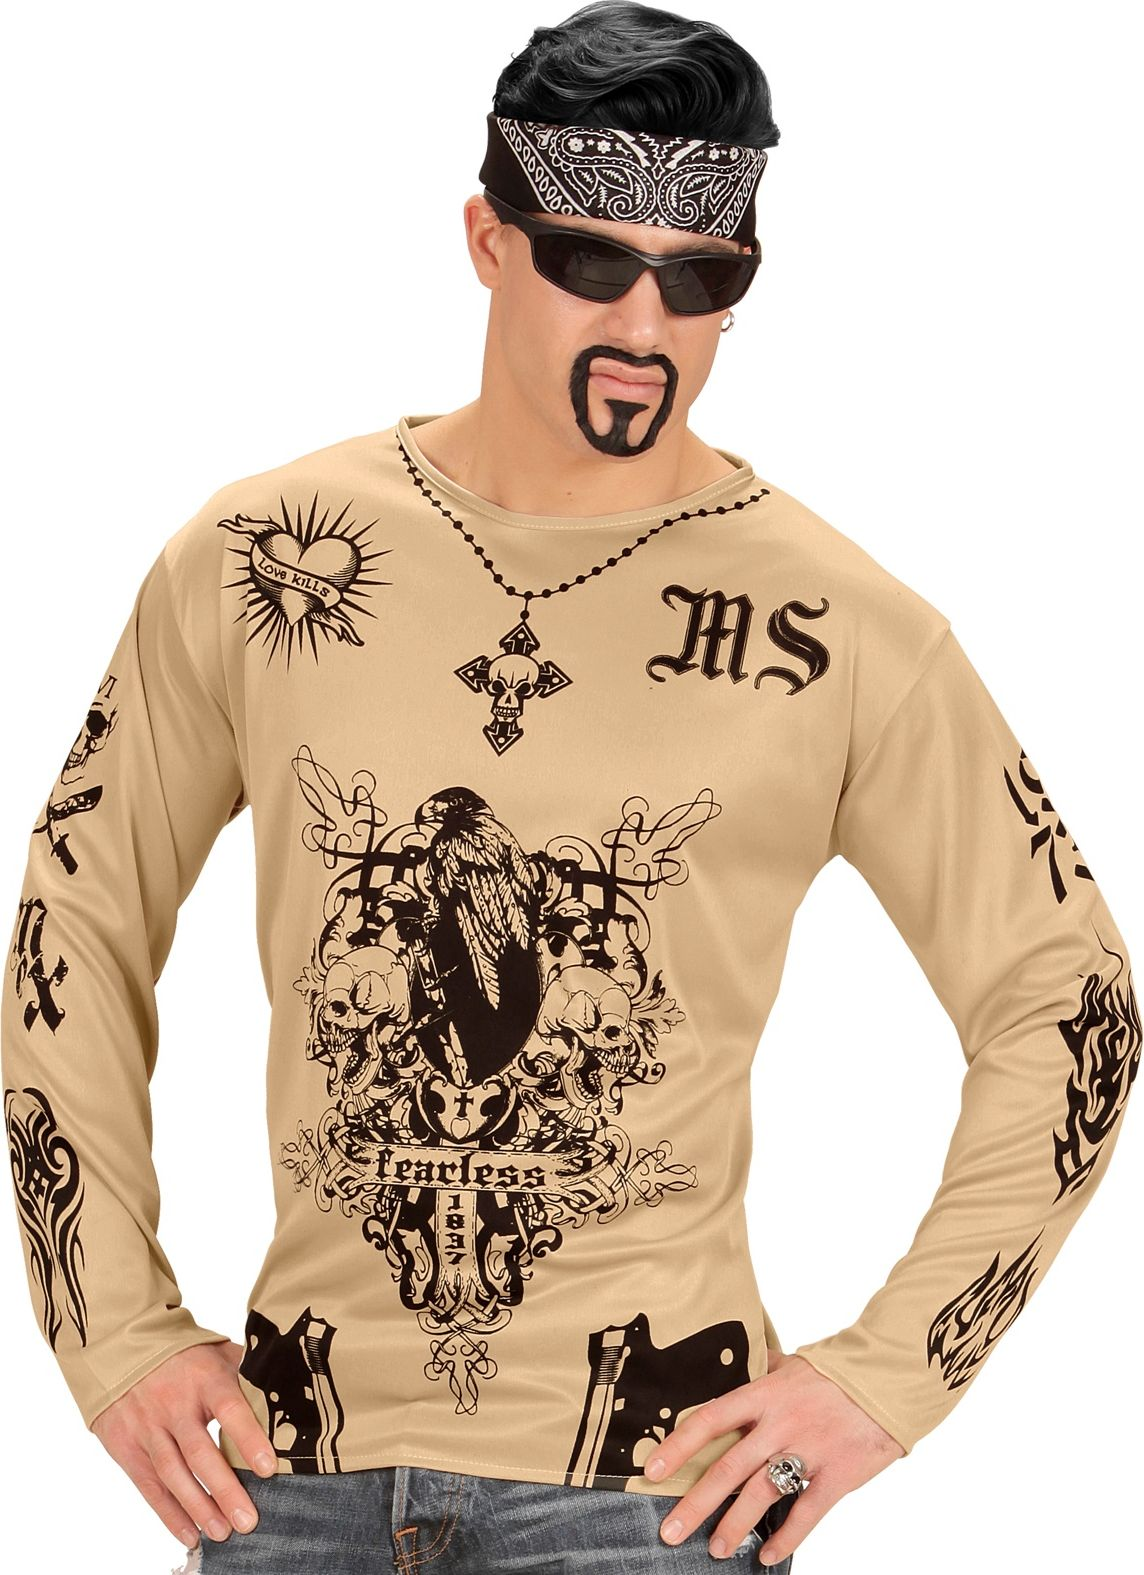 Gangster tattoo shirt